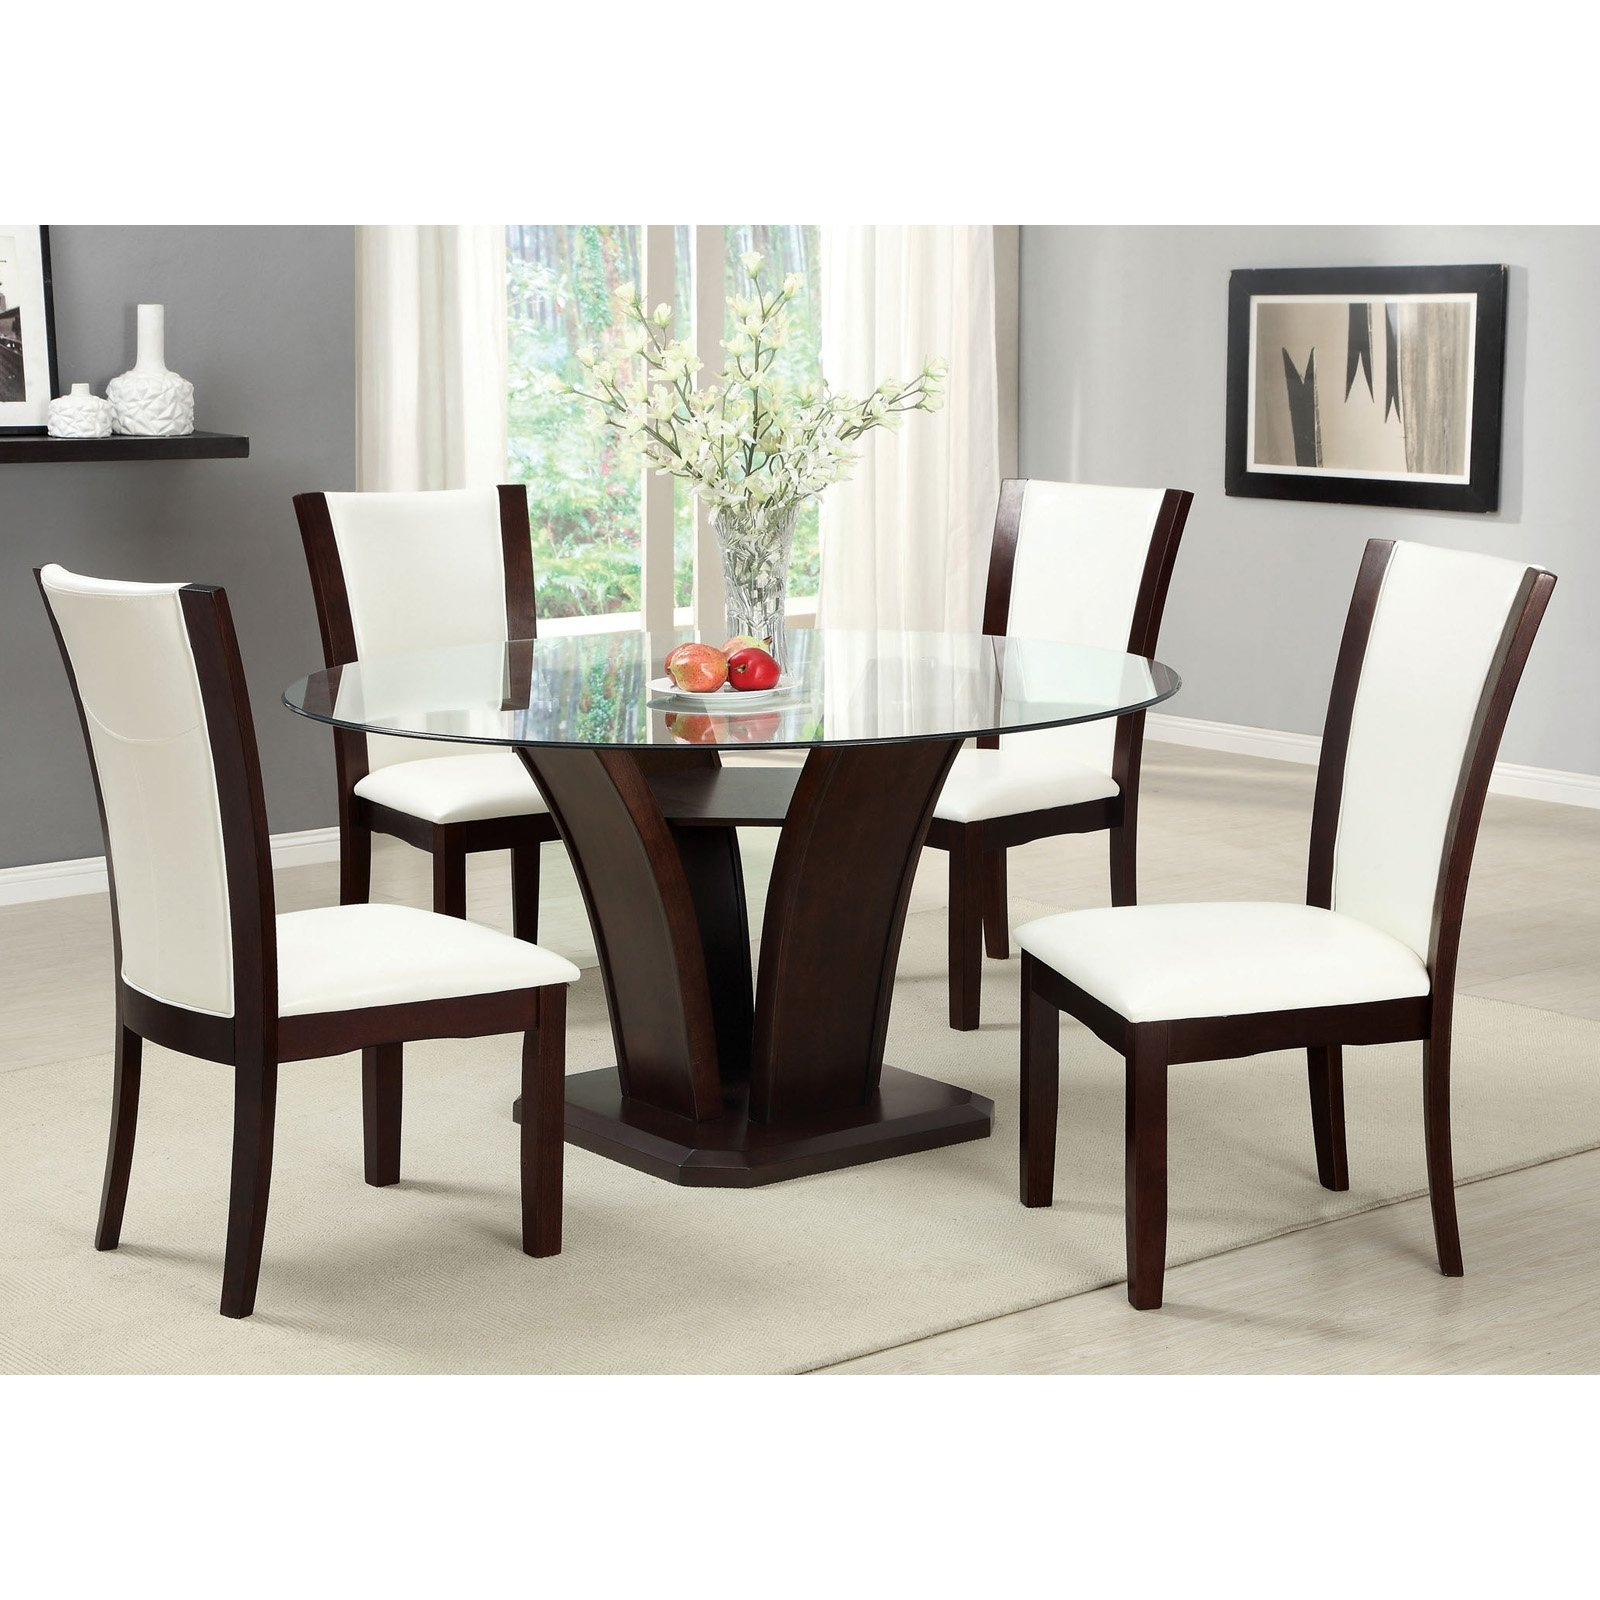 Well Known Furniture Of America Lavelle 5 Piece Glass Top Dining Set – Dark With Regard To Jensen 5 Piece Counter Sets (View 22 of 25)